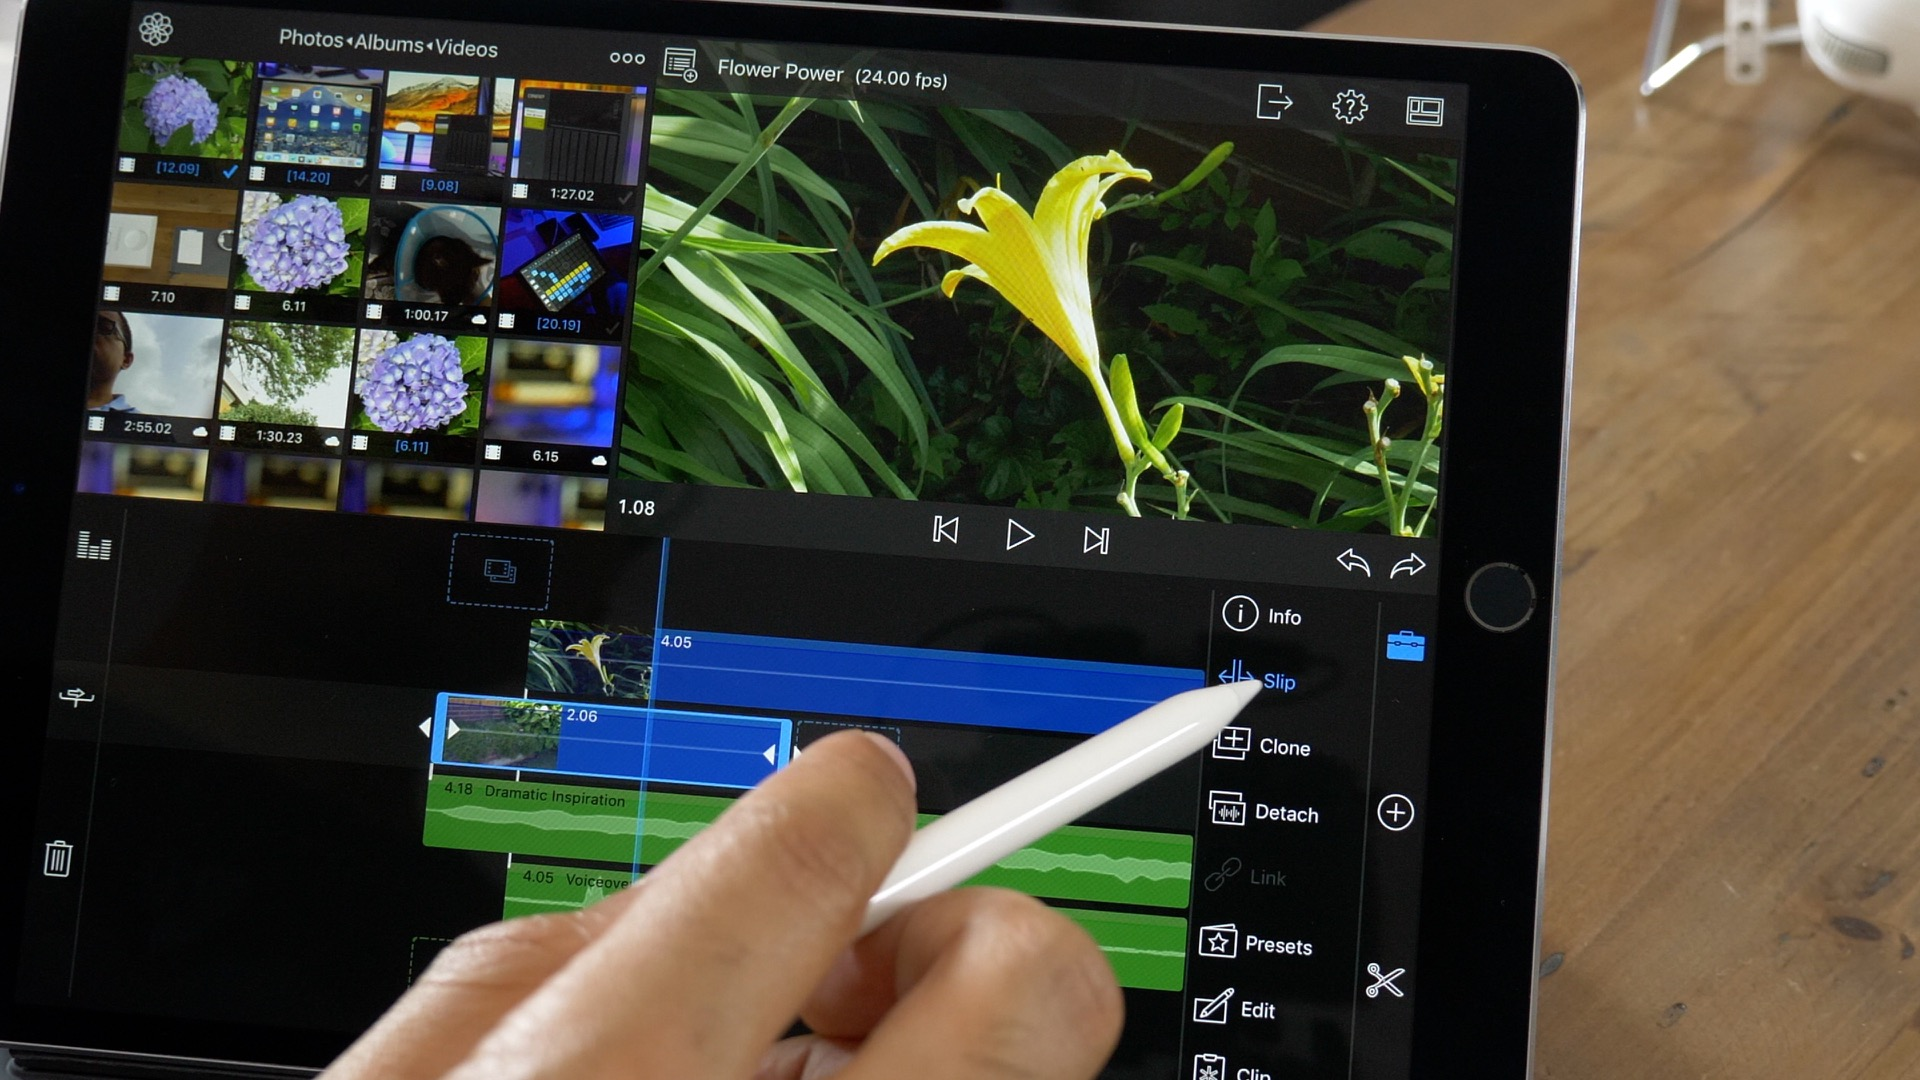 Picture perfect: the best photo editing apps for